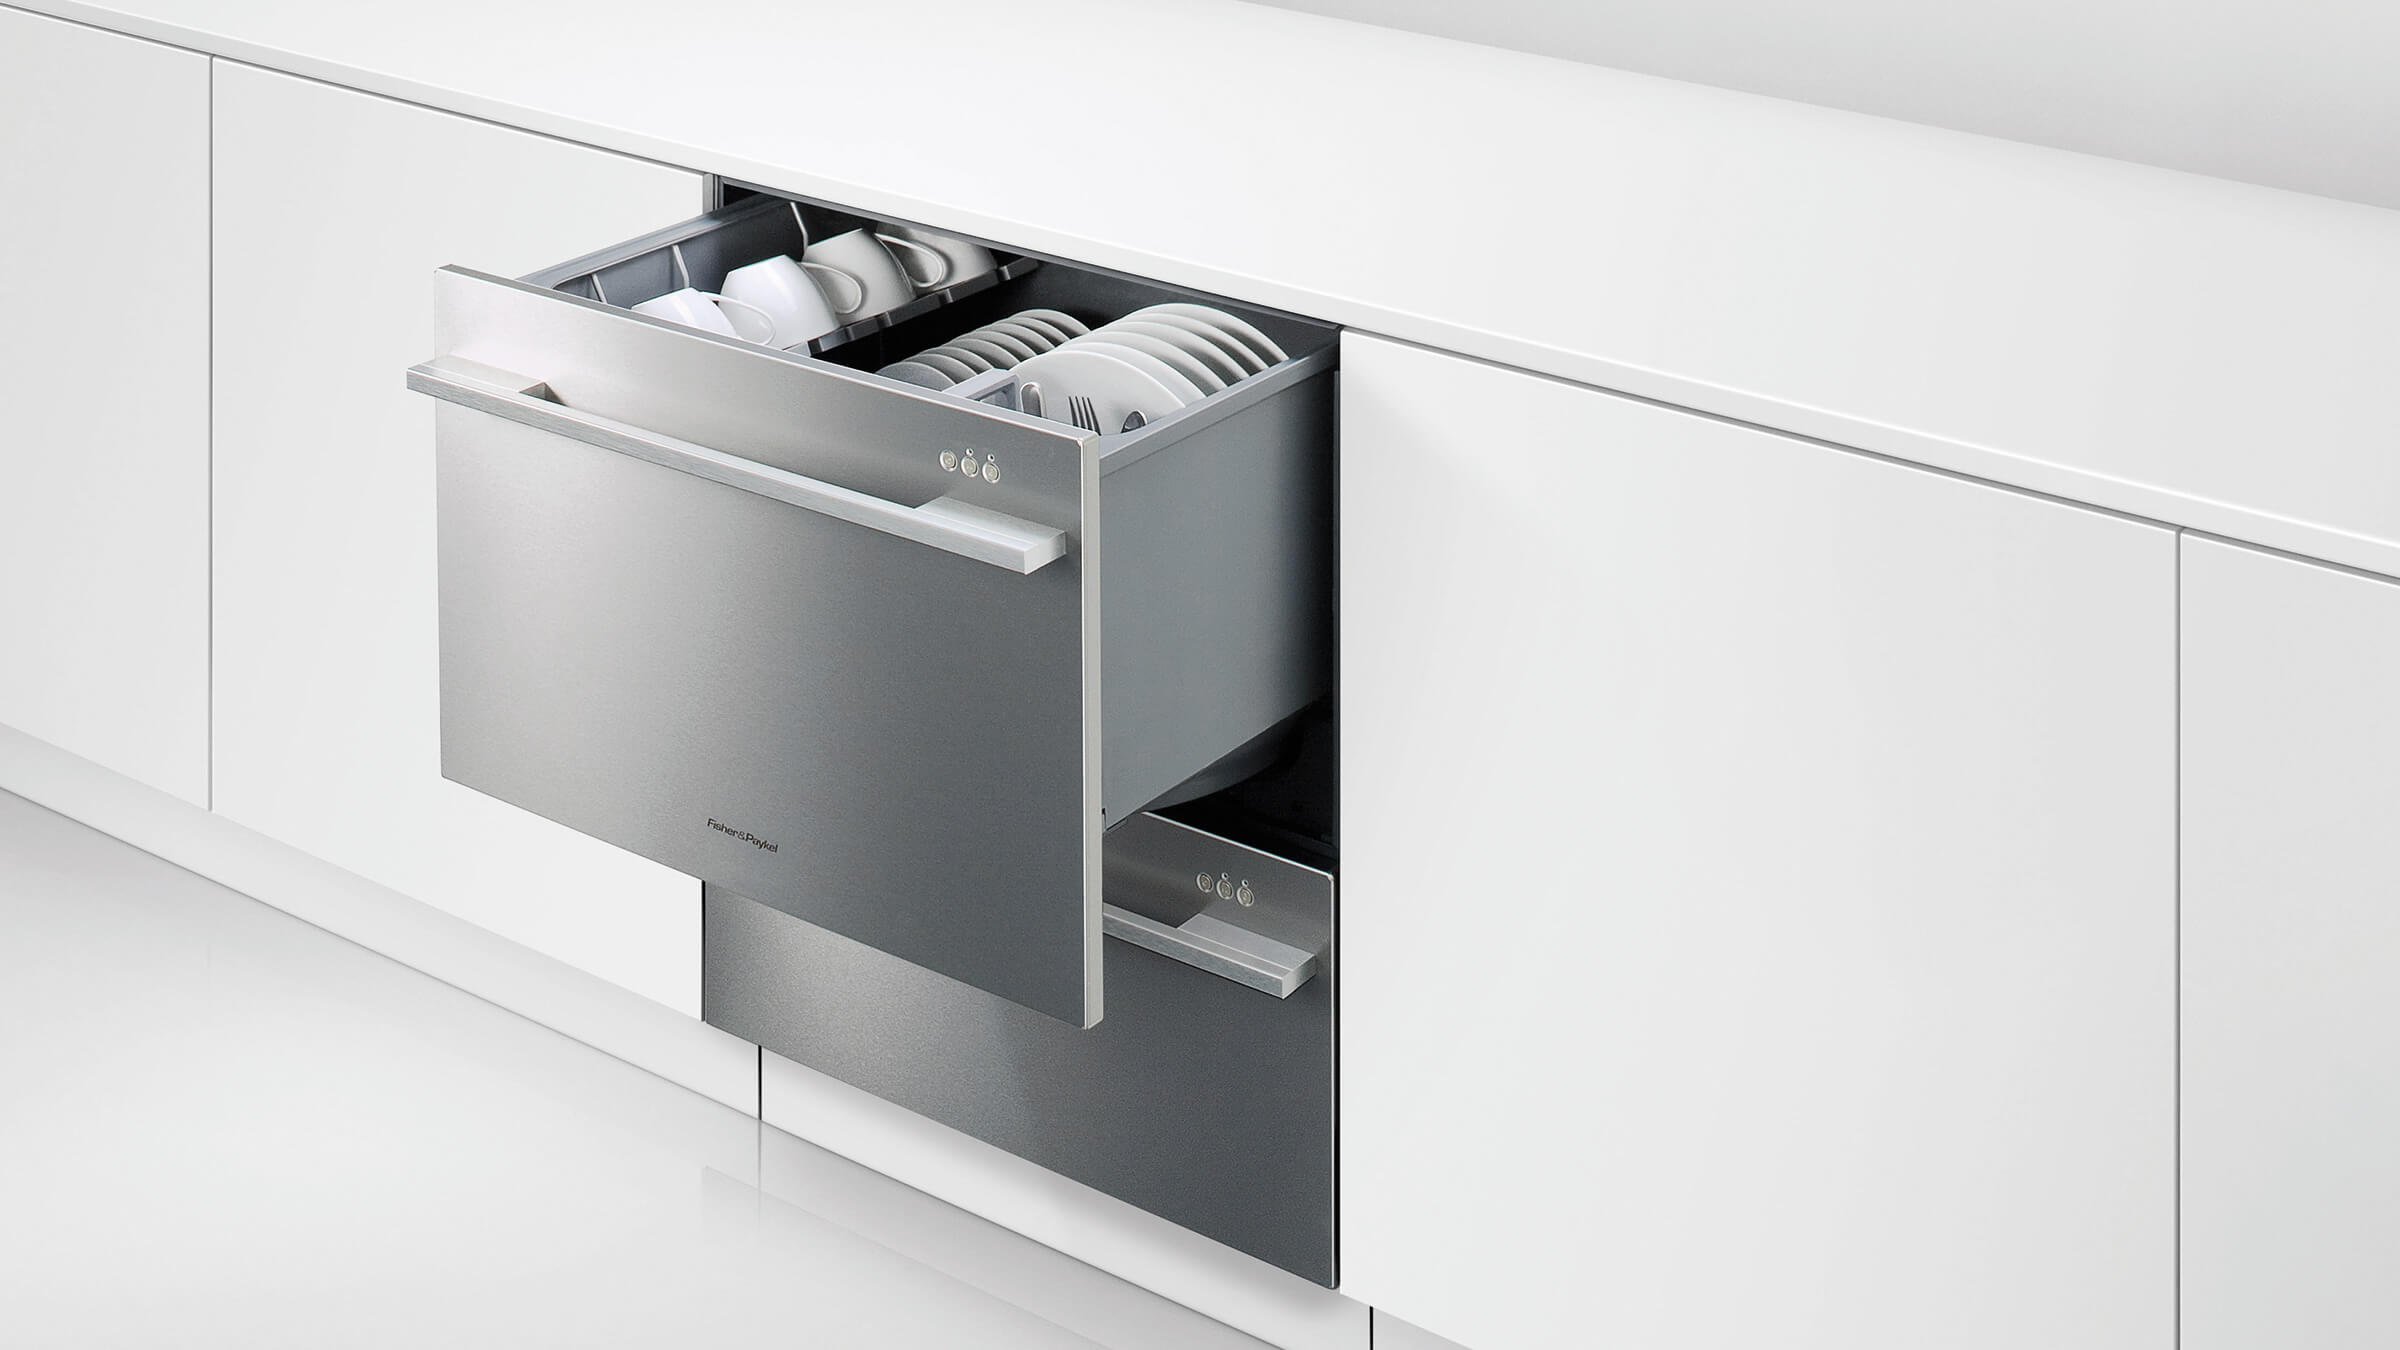 Fisher and paykel 2 drawer dishwasher - Dishdrawer Double Dishwasher